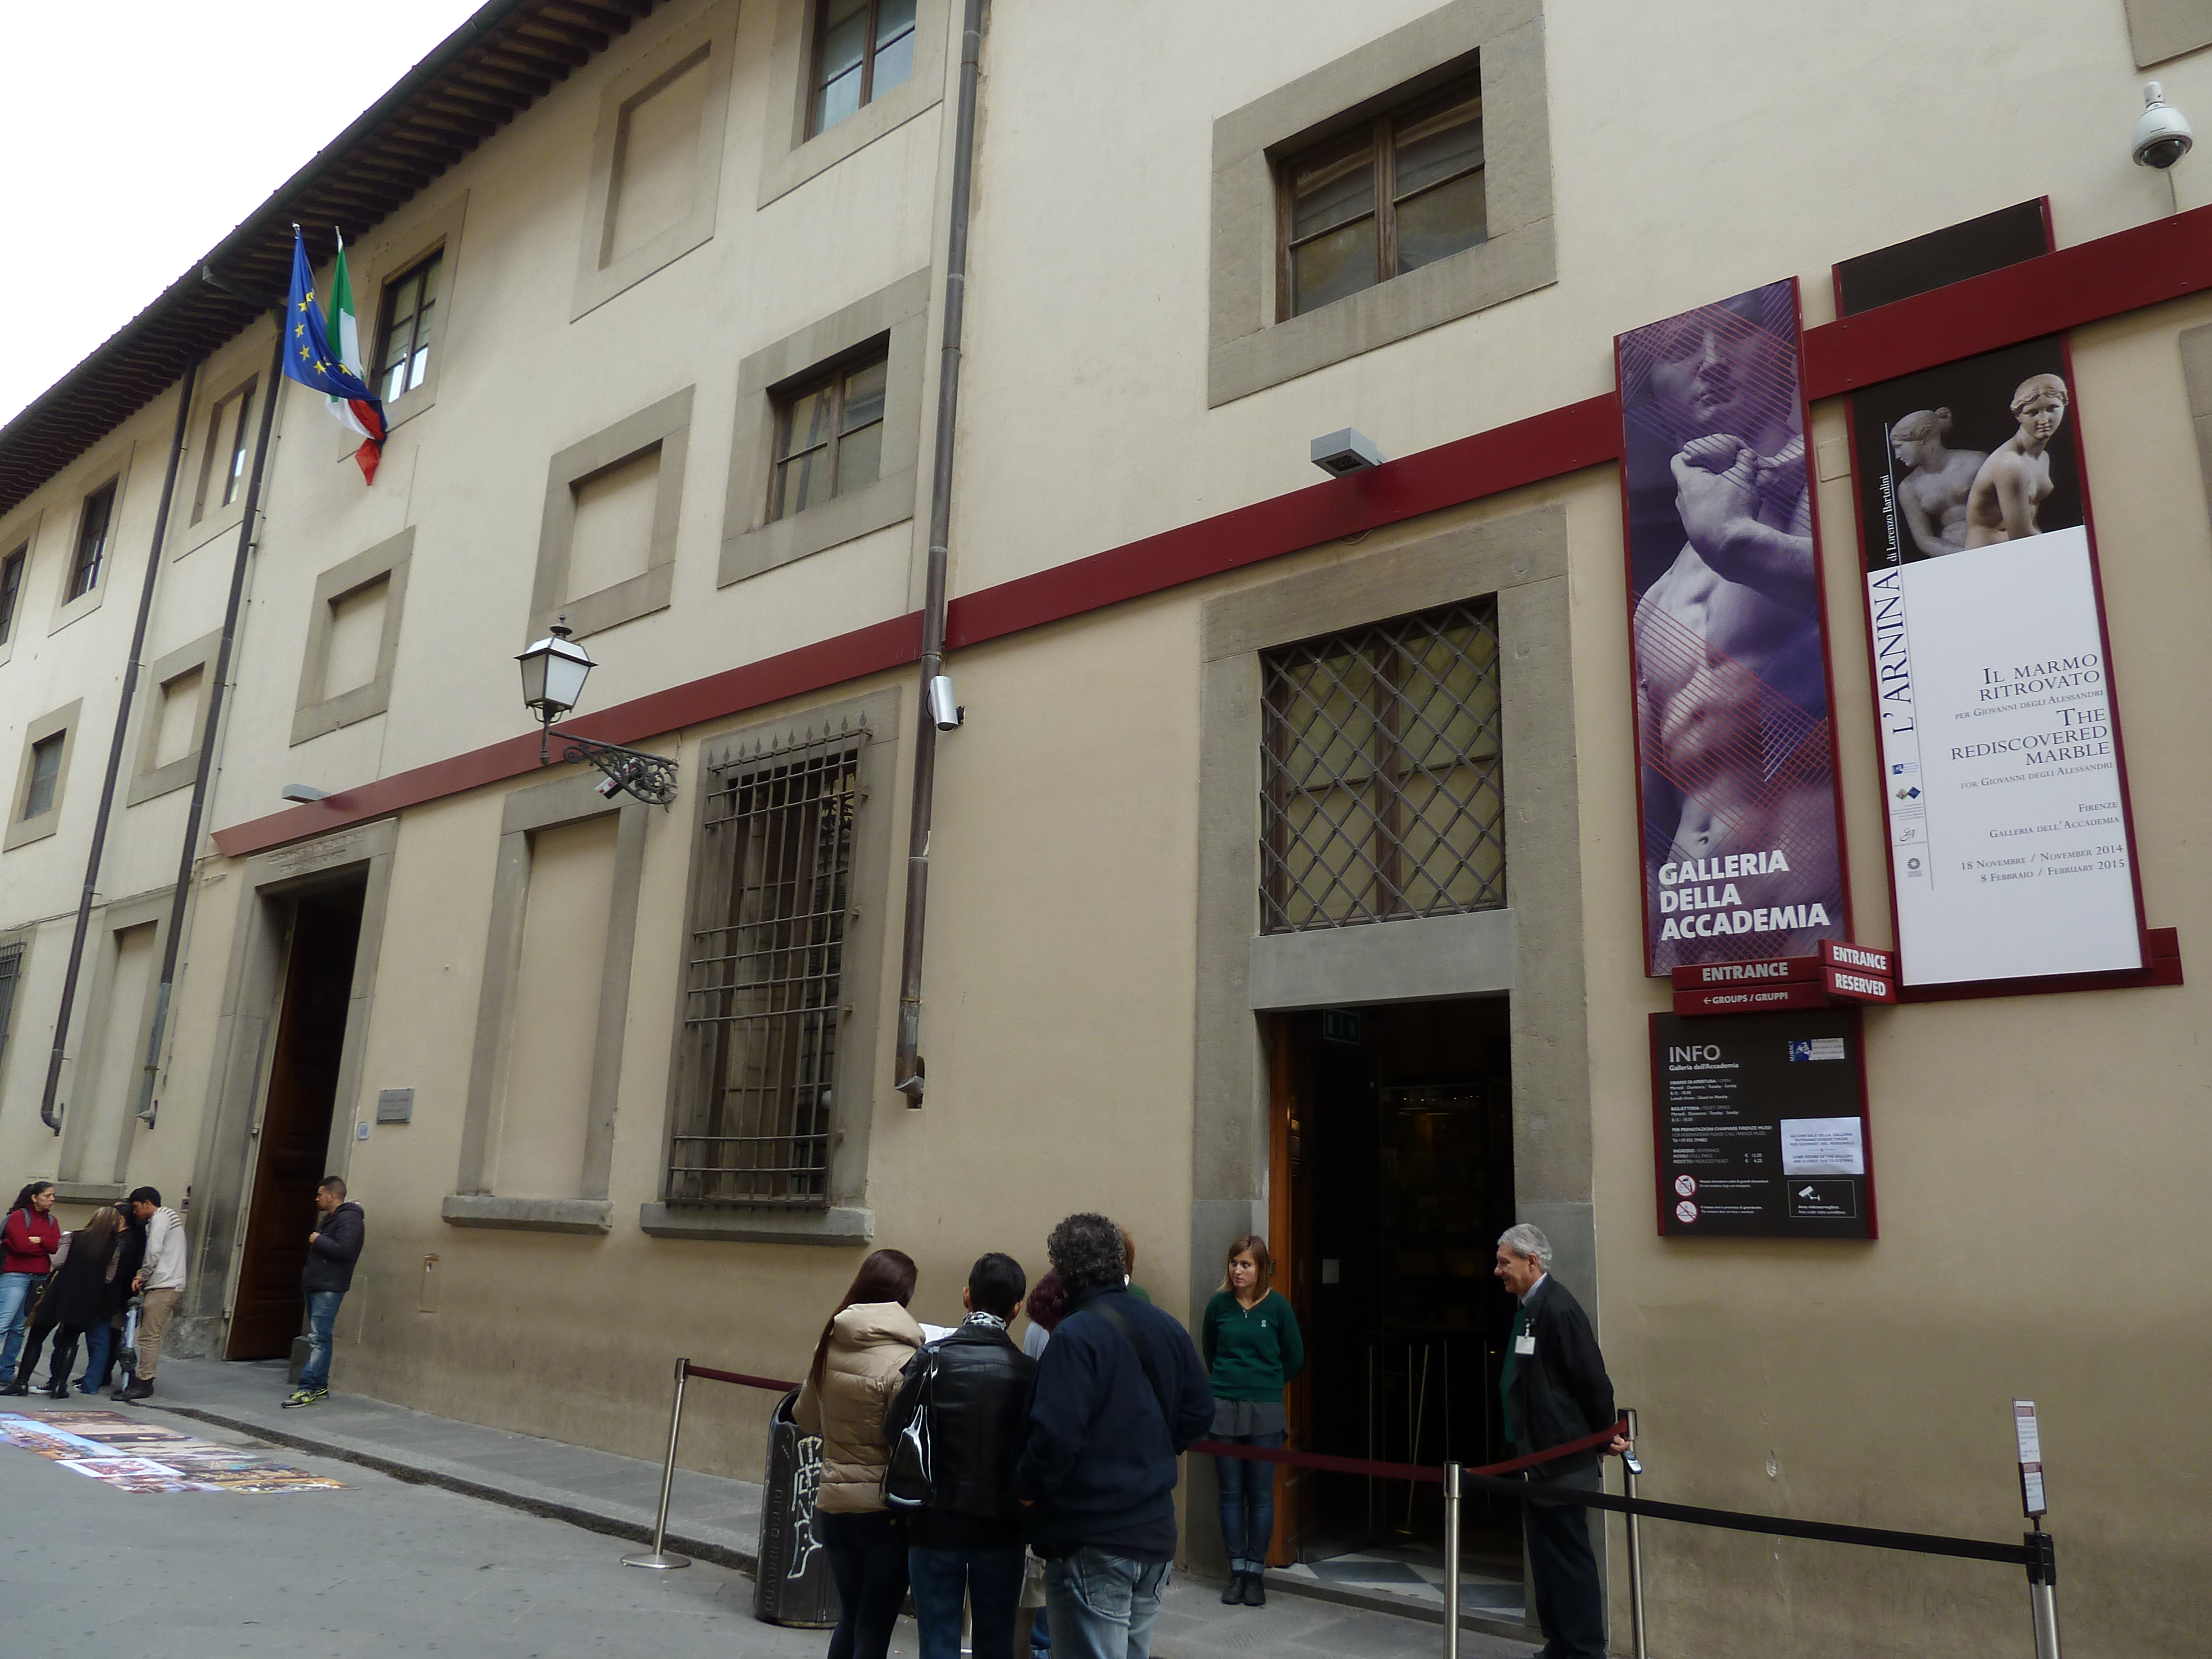 Street Levels Gallery Florence, Insider's Florence Trip—Galleria dell'Accademia 藝術學院美術館 ...